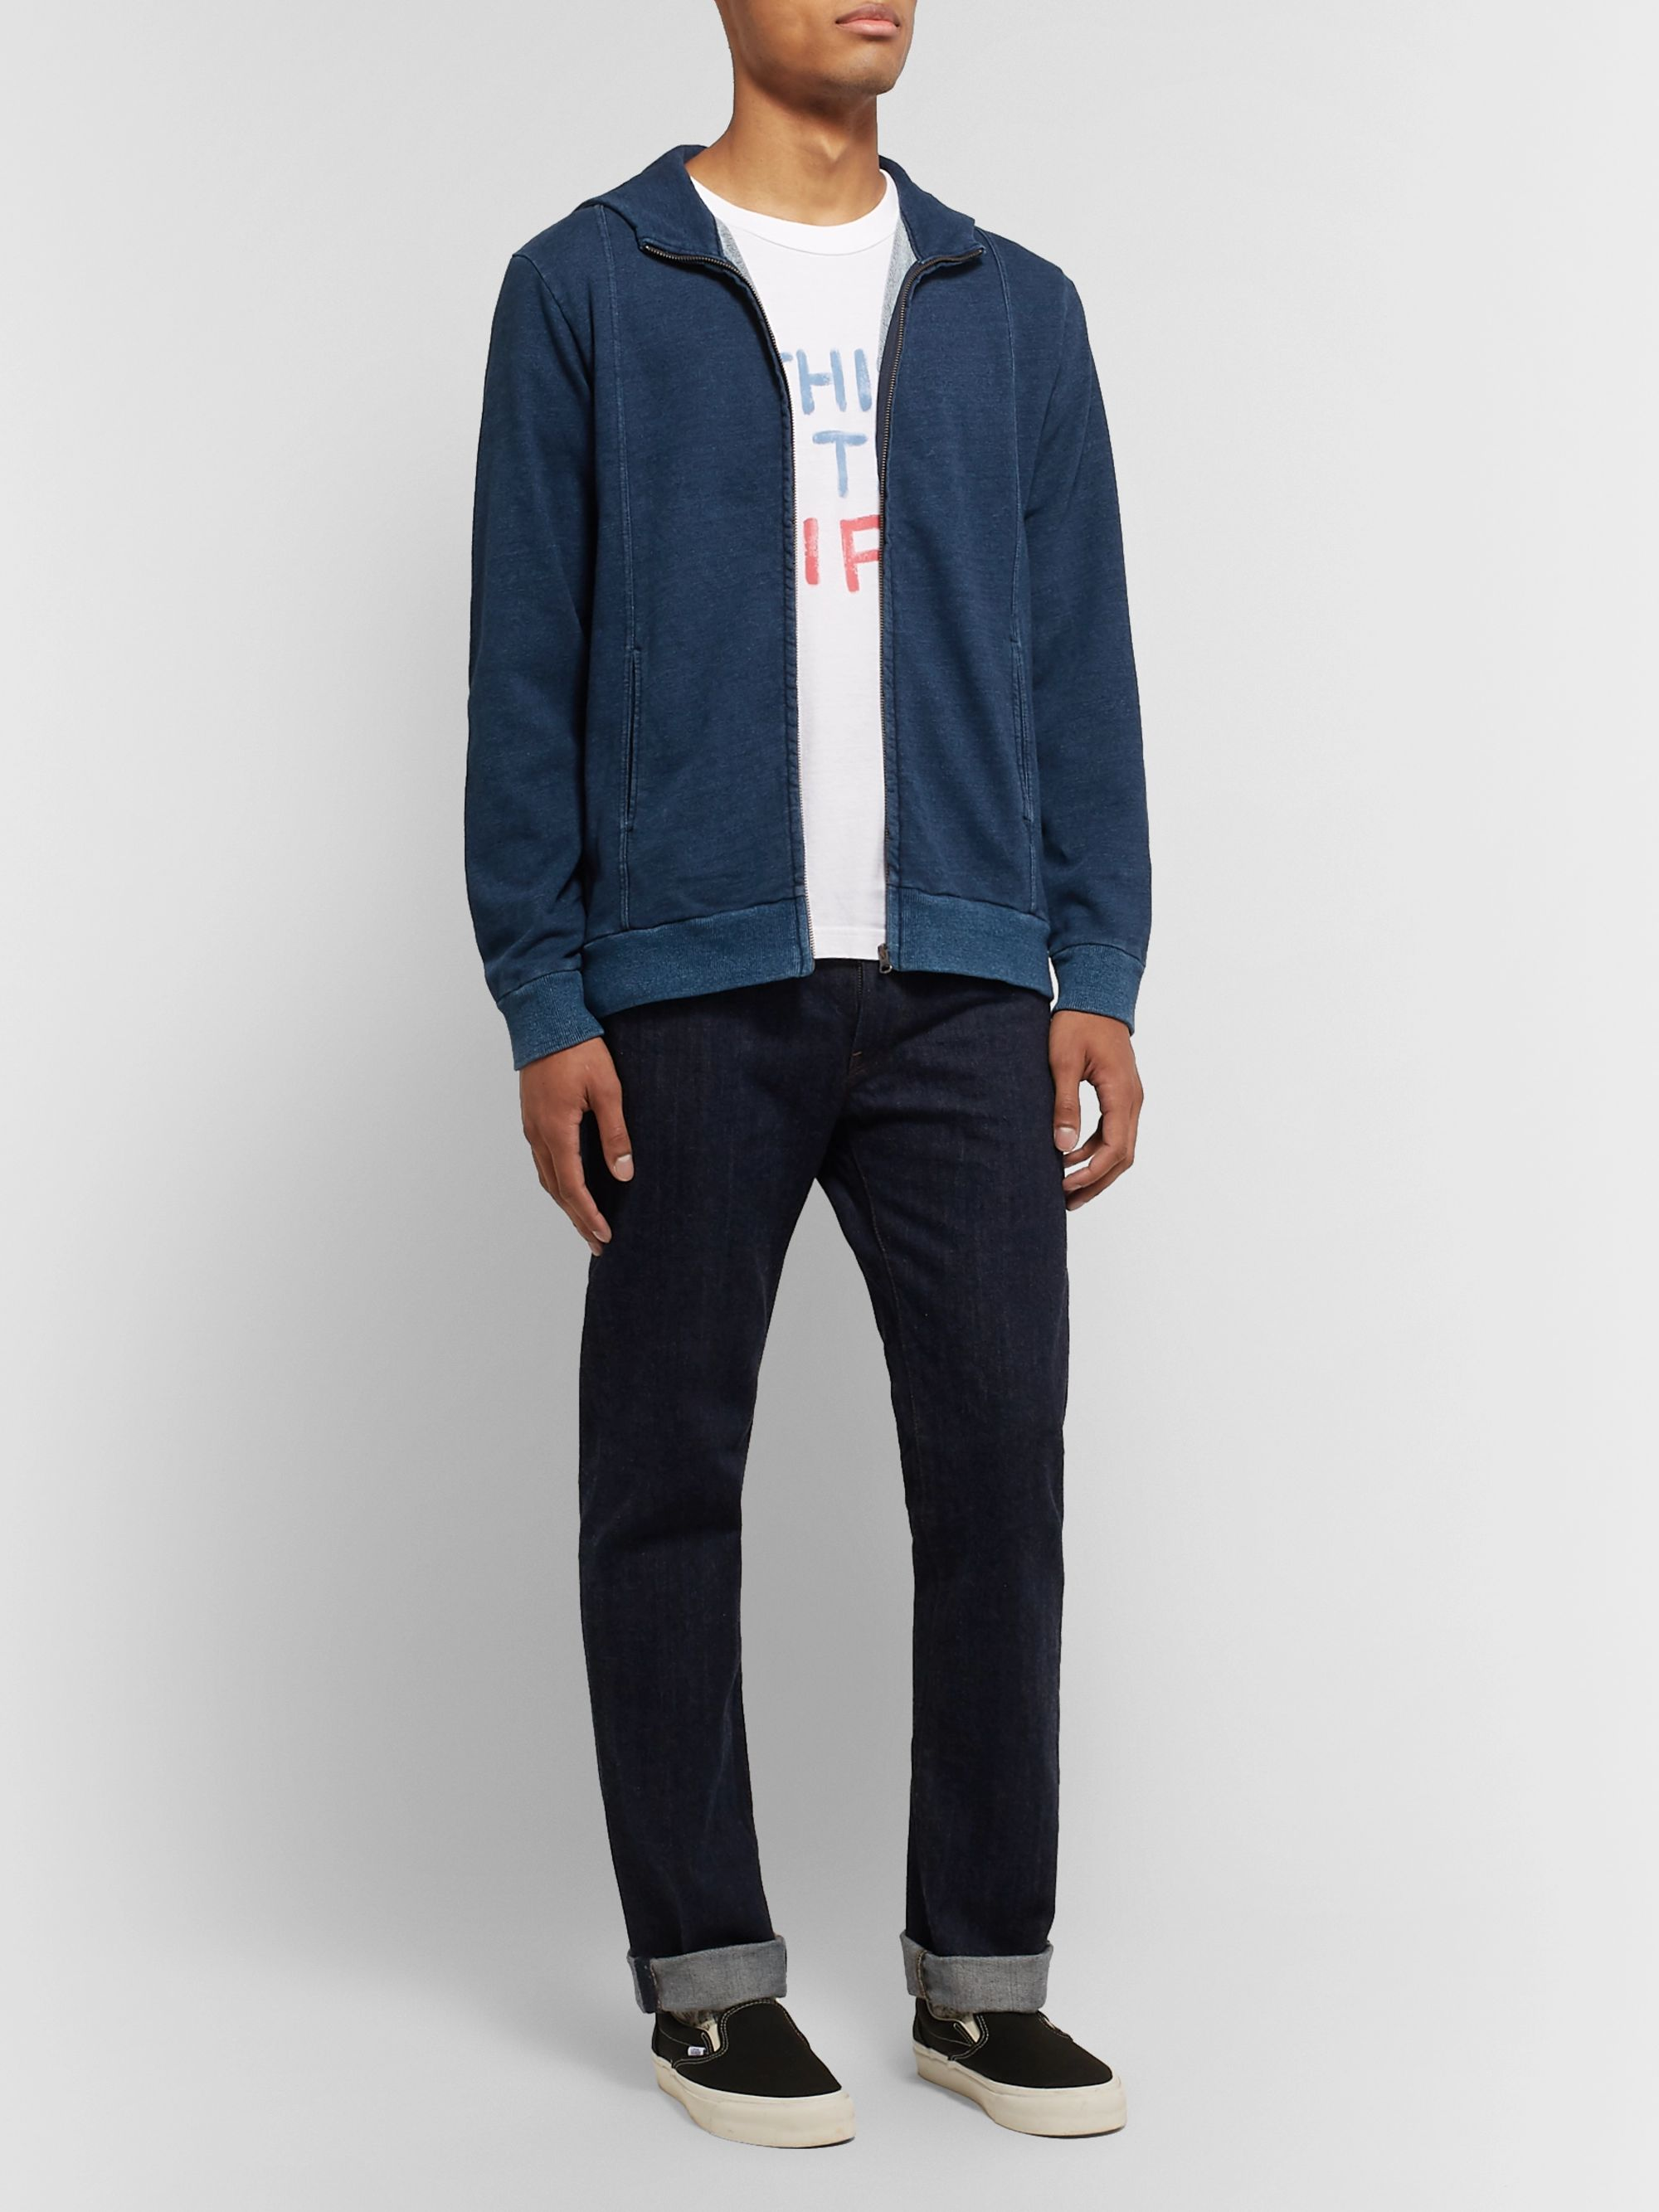 Blue Blue Japan Indigo-Dyed Loopback Cotton-Jersey Zip-Up Hoodie